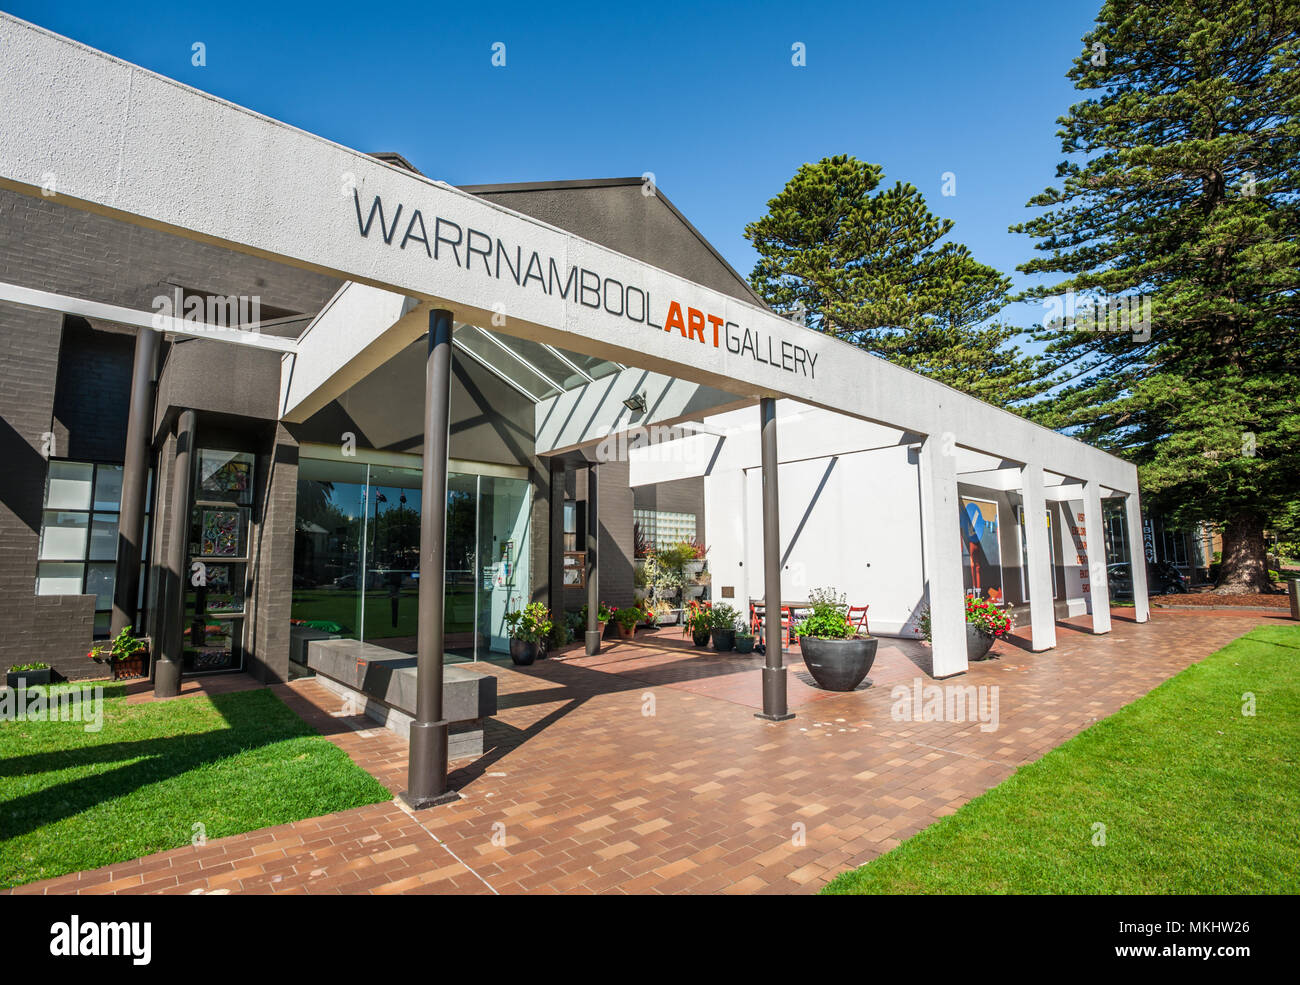 Entrée de la galerie d'Art de Warrnambool, Warrnambool, Shipwreck Coast, Great Ocean Road, Victoria, Australie Photo Stock